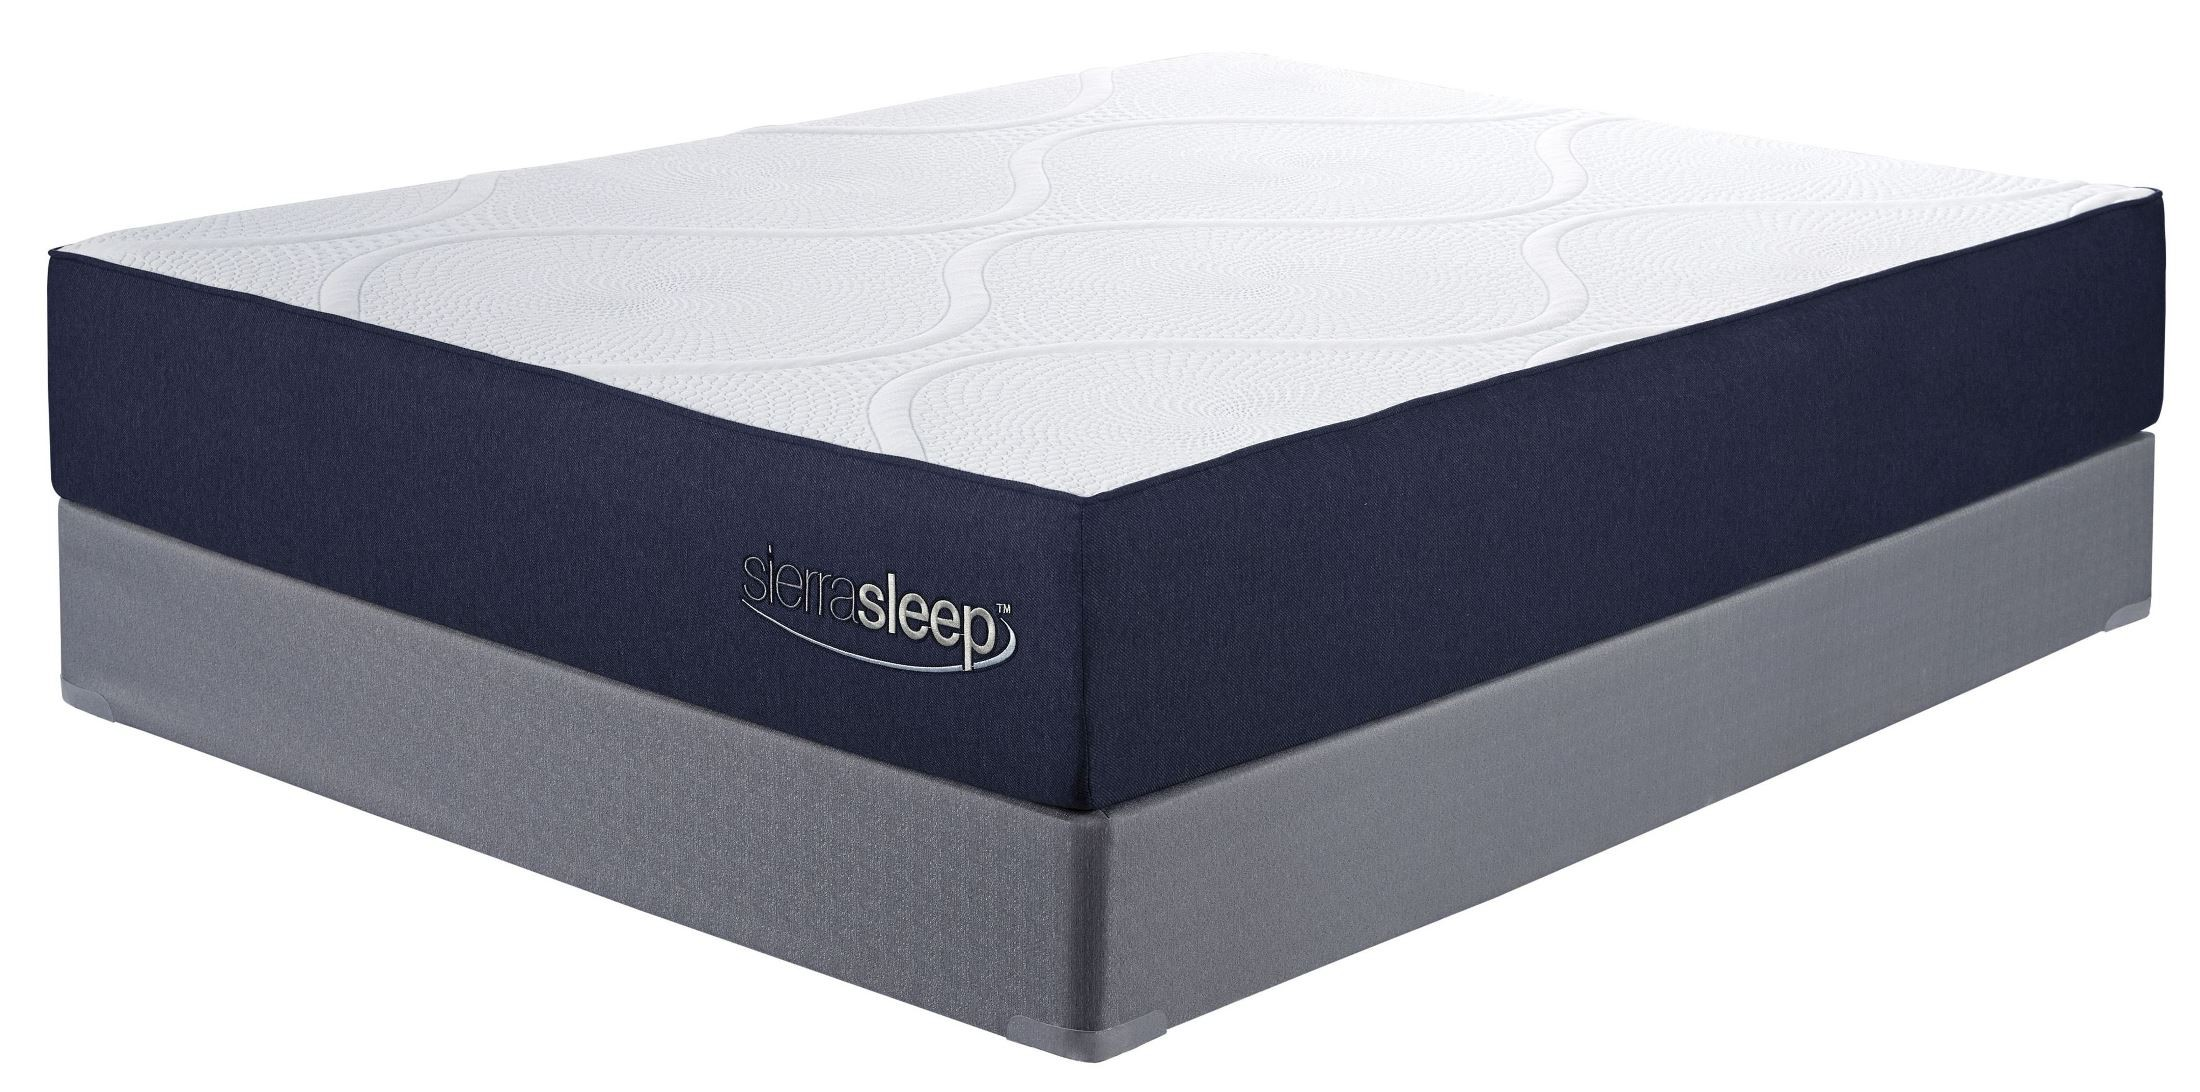 11 inch gel memory foam white king mattress with foundation m97341 m81x42 2 ashley Memory foam king mattress